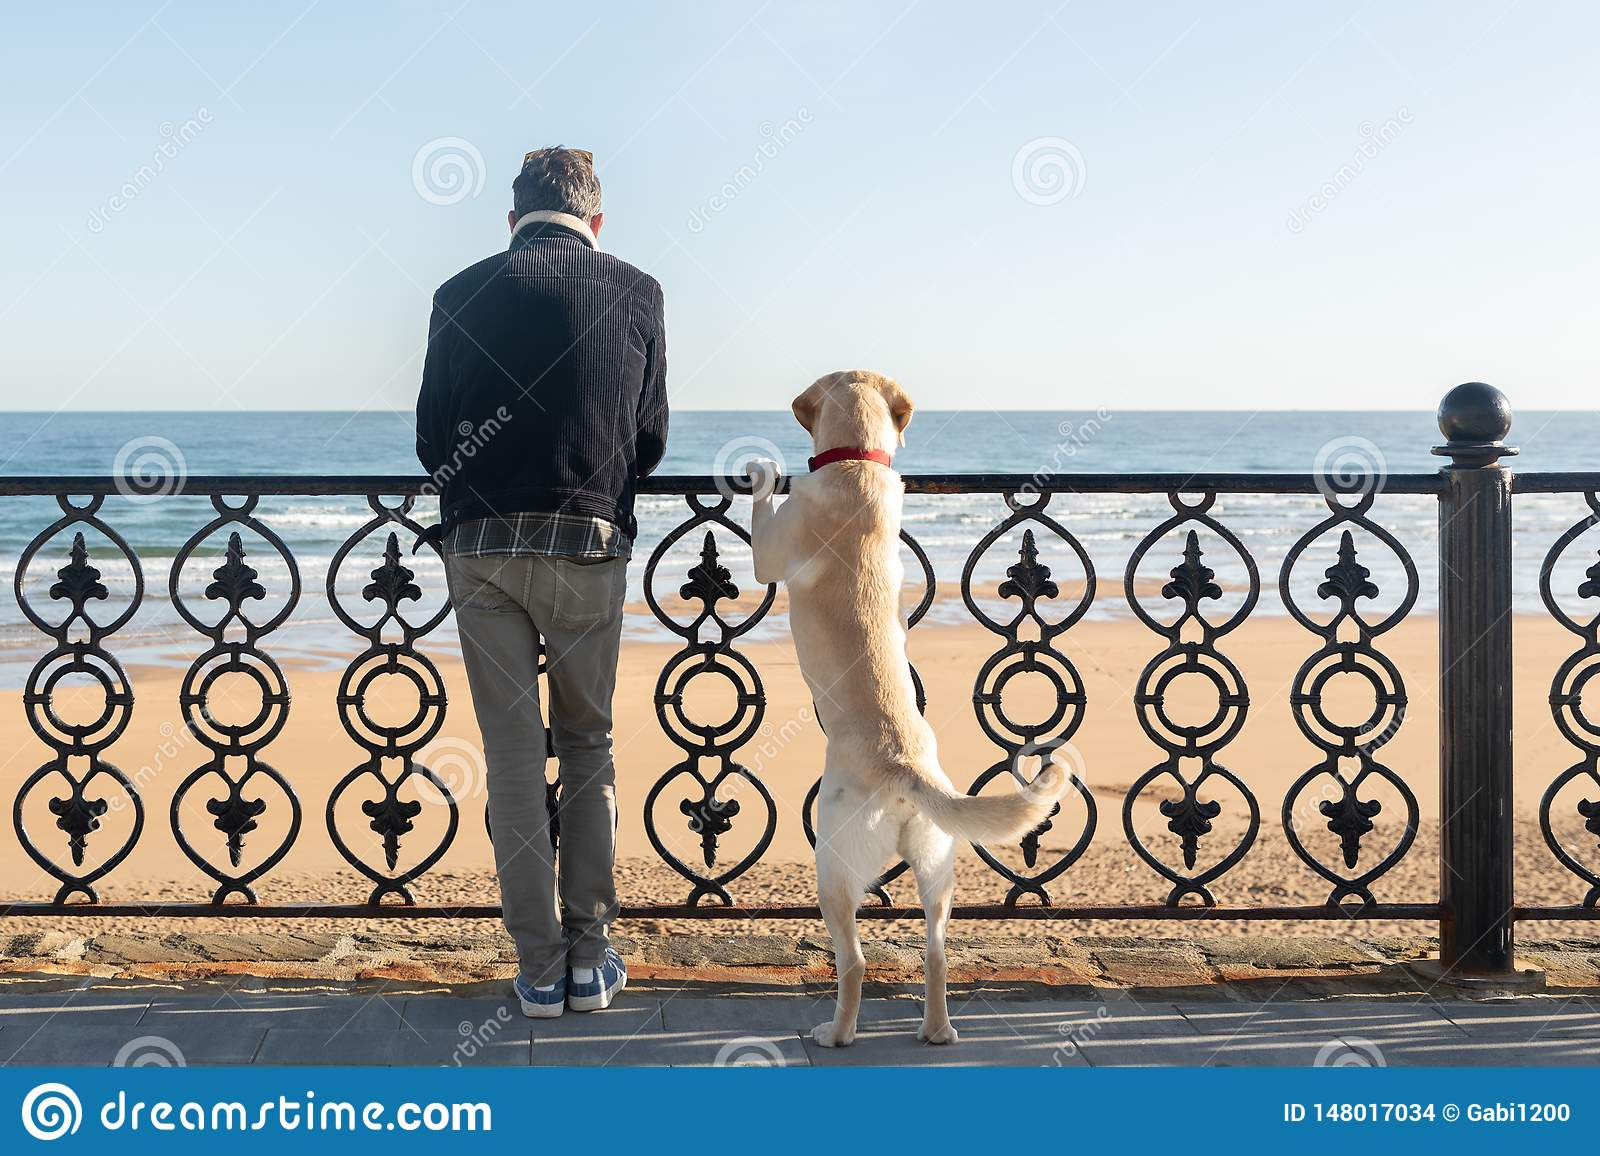 A man with his dog leaning on a railing watching the sea in the background